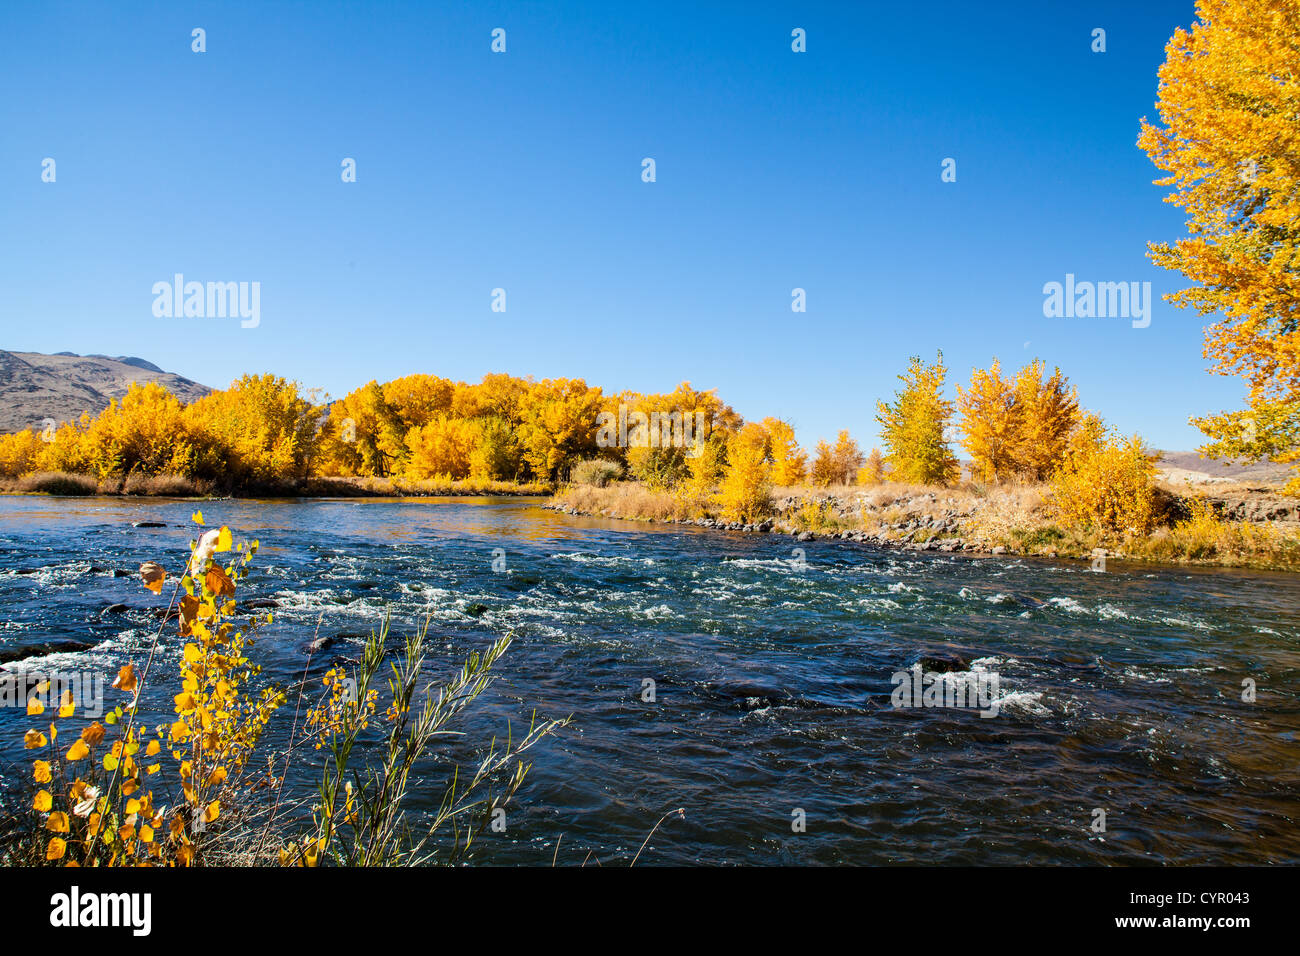 Fall Color along the Truckee River in Northern Nevada at the Tahoe Reno Industrial Center - Stock Image